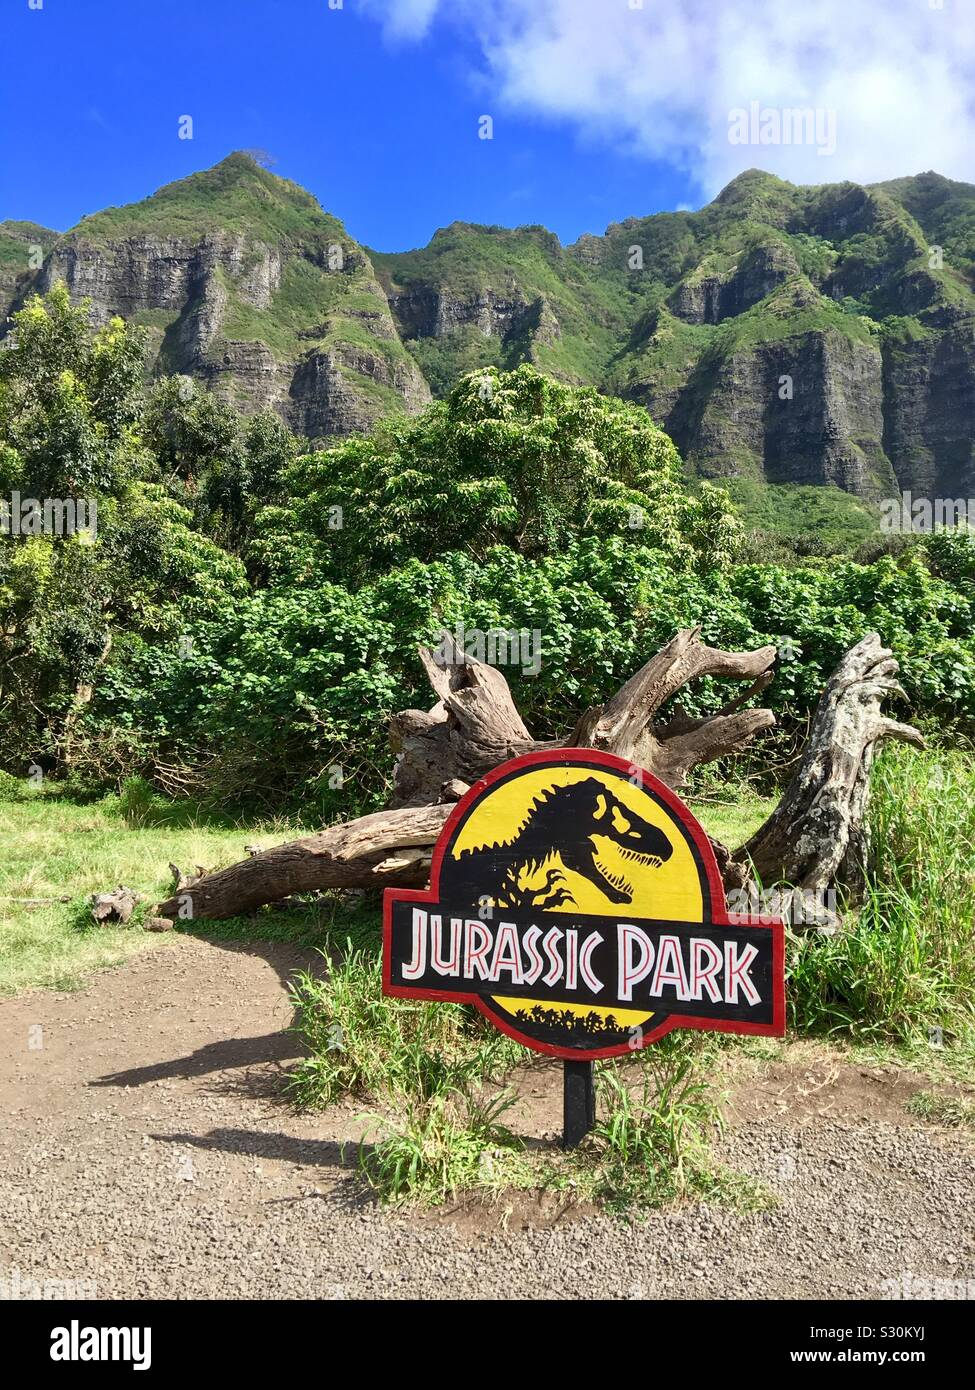 movie-location-for-jurassic-park-at-kual